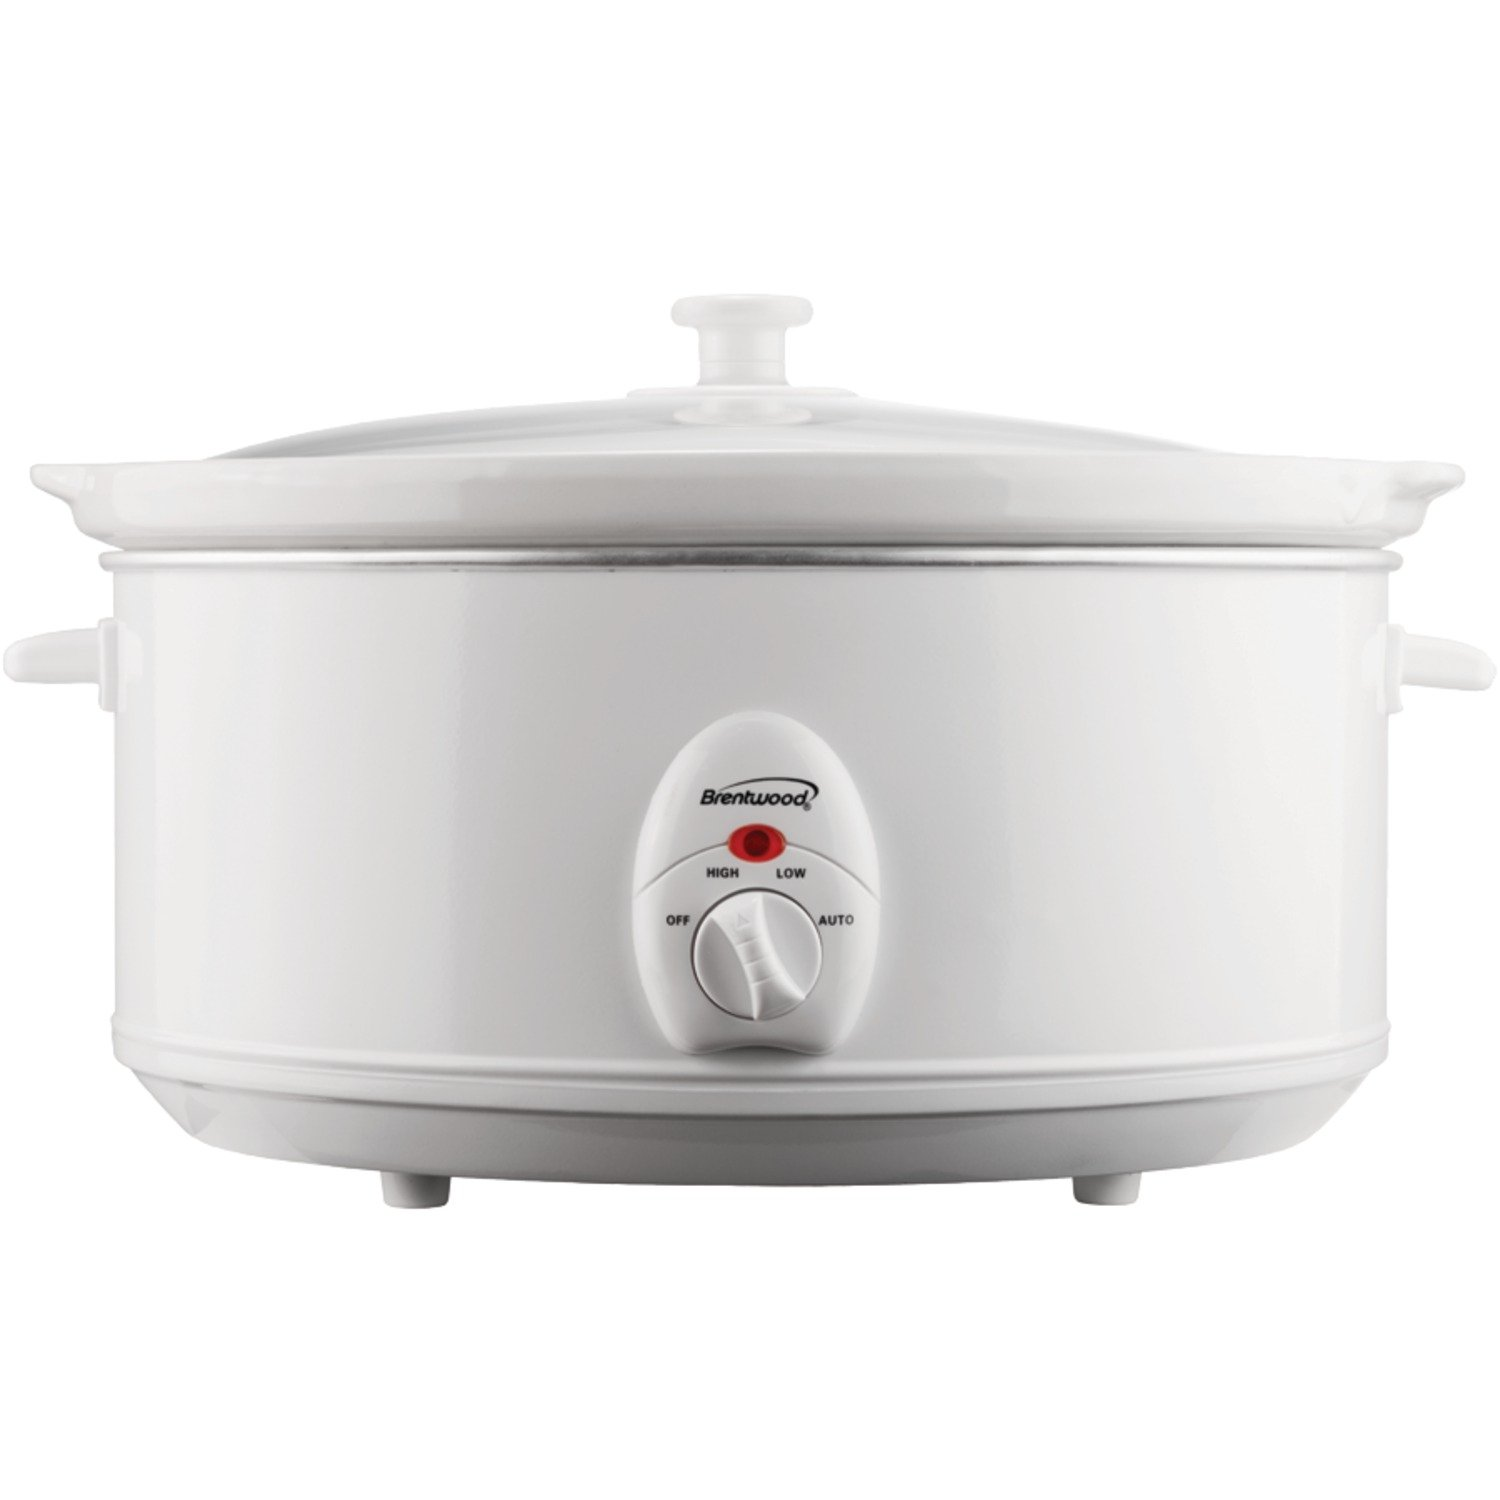 Brentwood Appliances SC-145W 6.5-Quart Slow Cooker, White